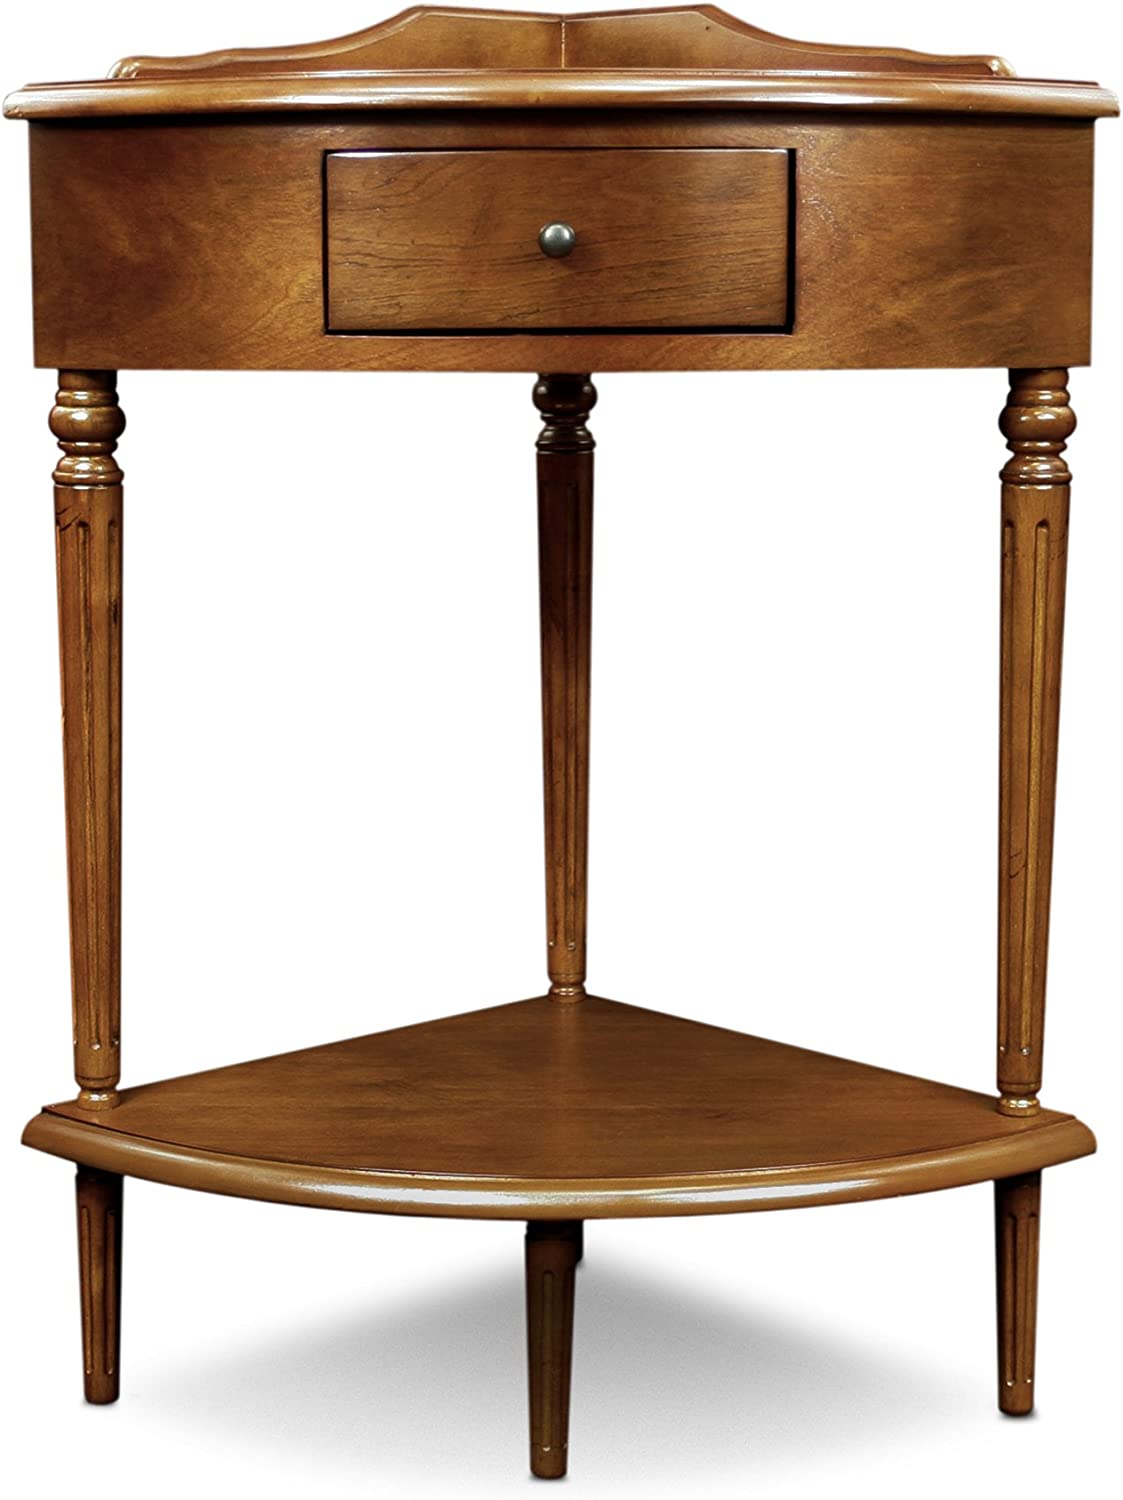 Leick Furniture Accent Table Hardwood Multi Color Amazon Co Uk Kitchen Home